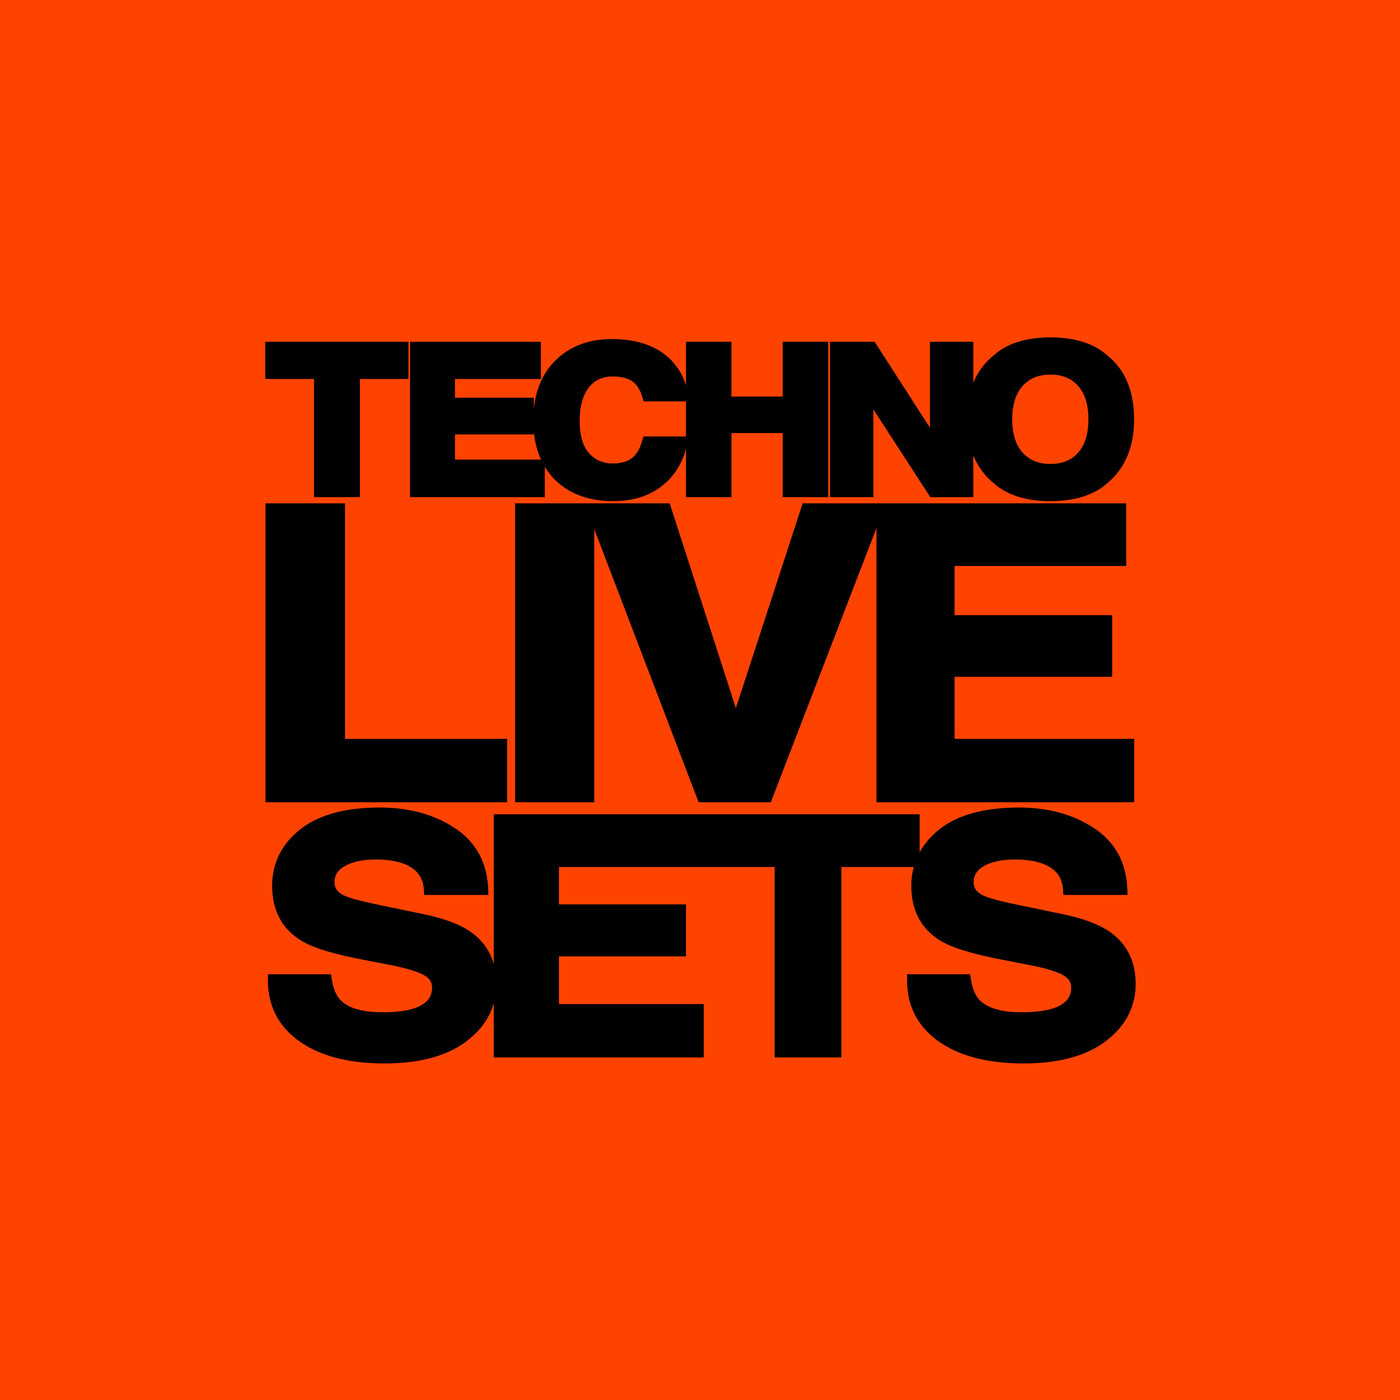 Techno Live Sets TLS Podcast